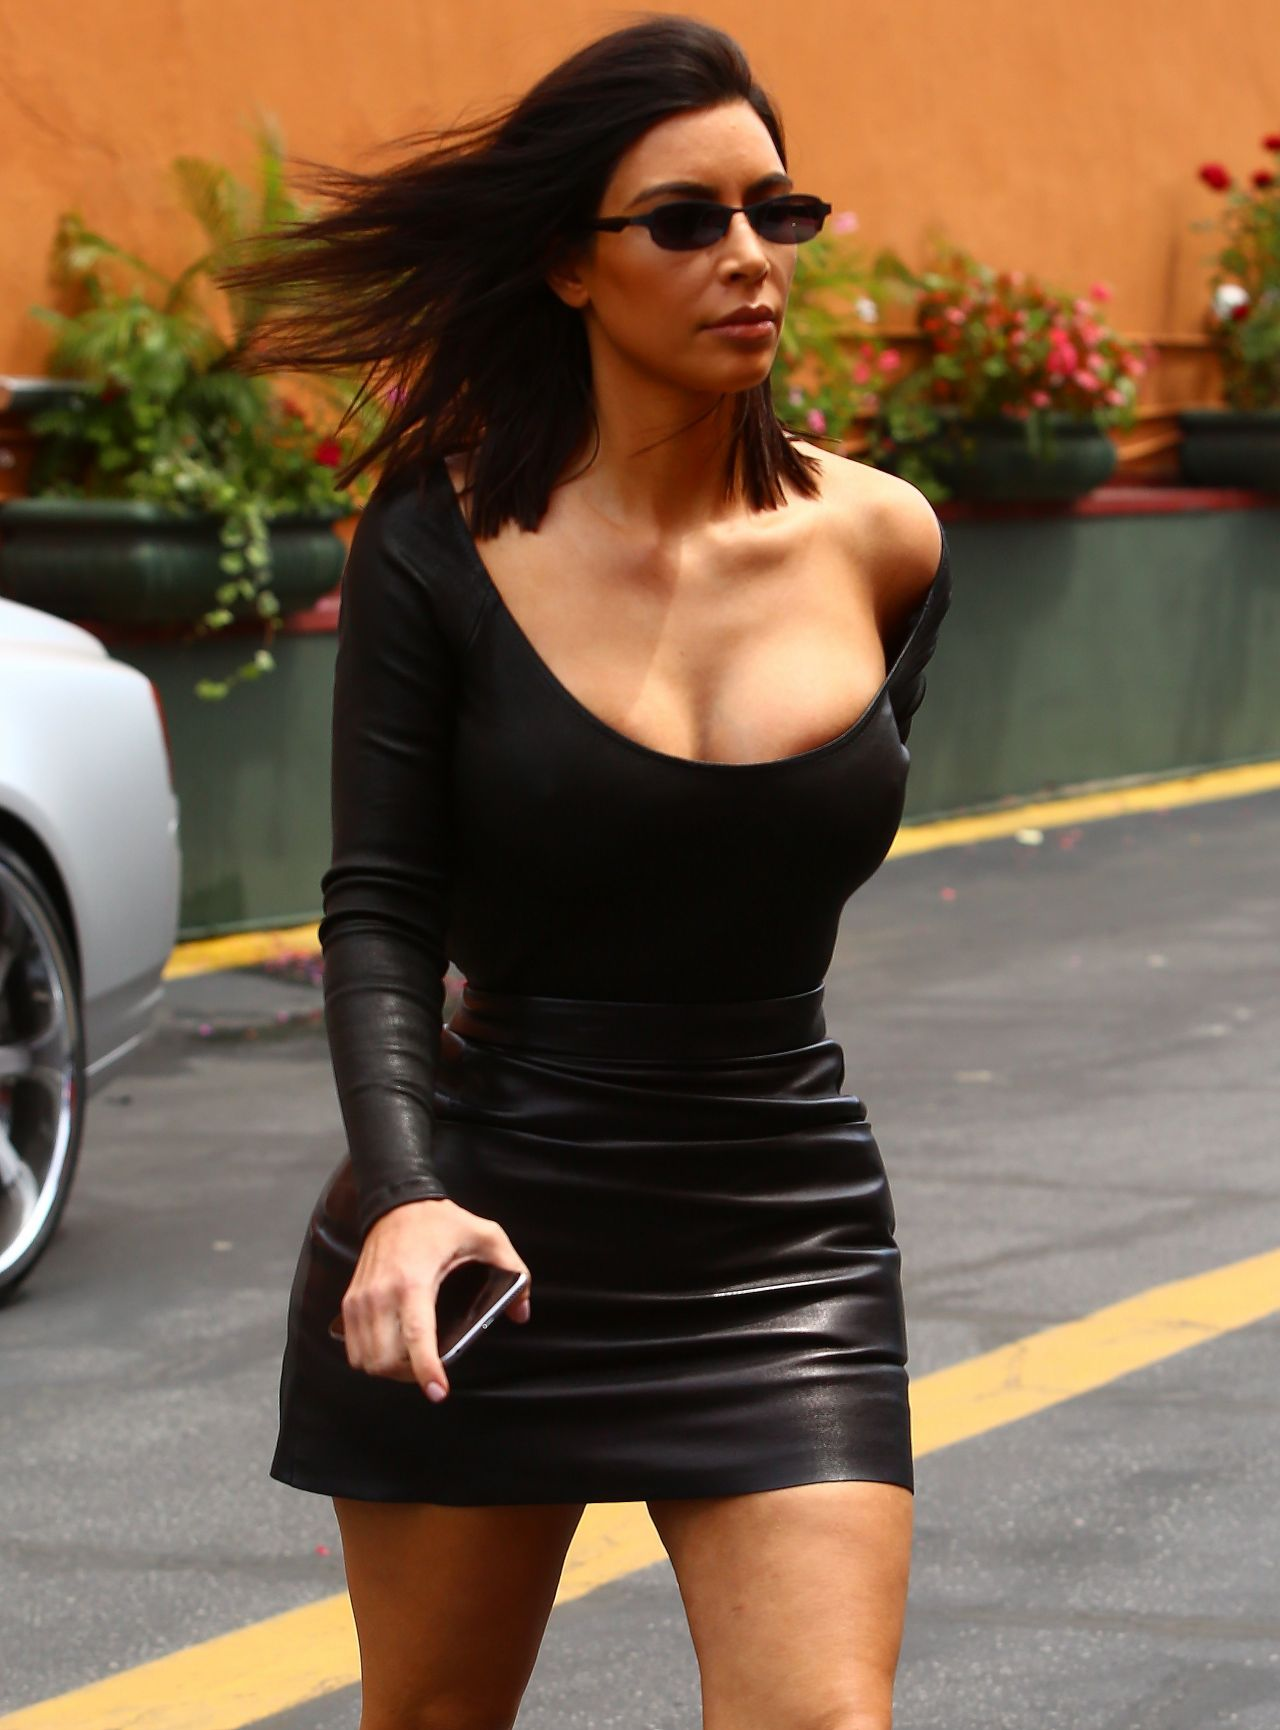 Kim Kardashian In Skintight Black Outfit Arrives To Film